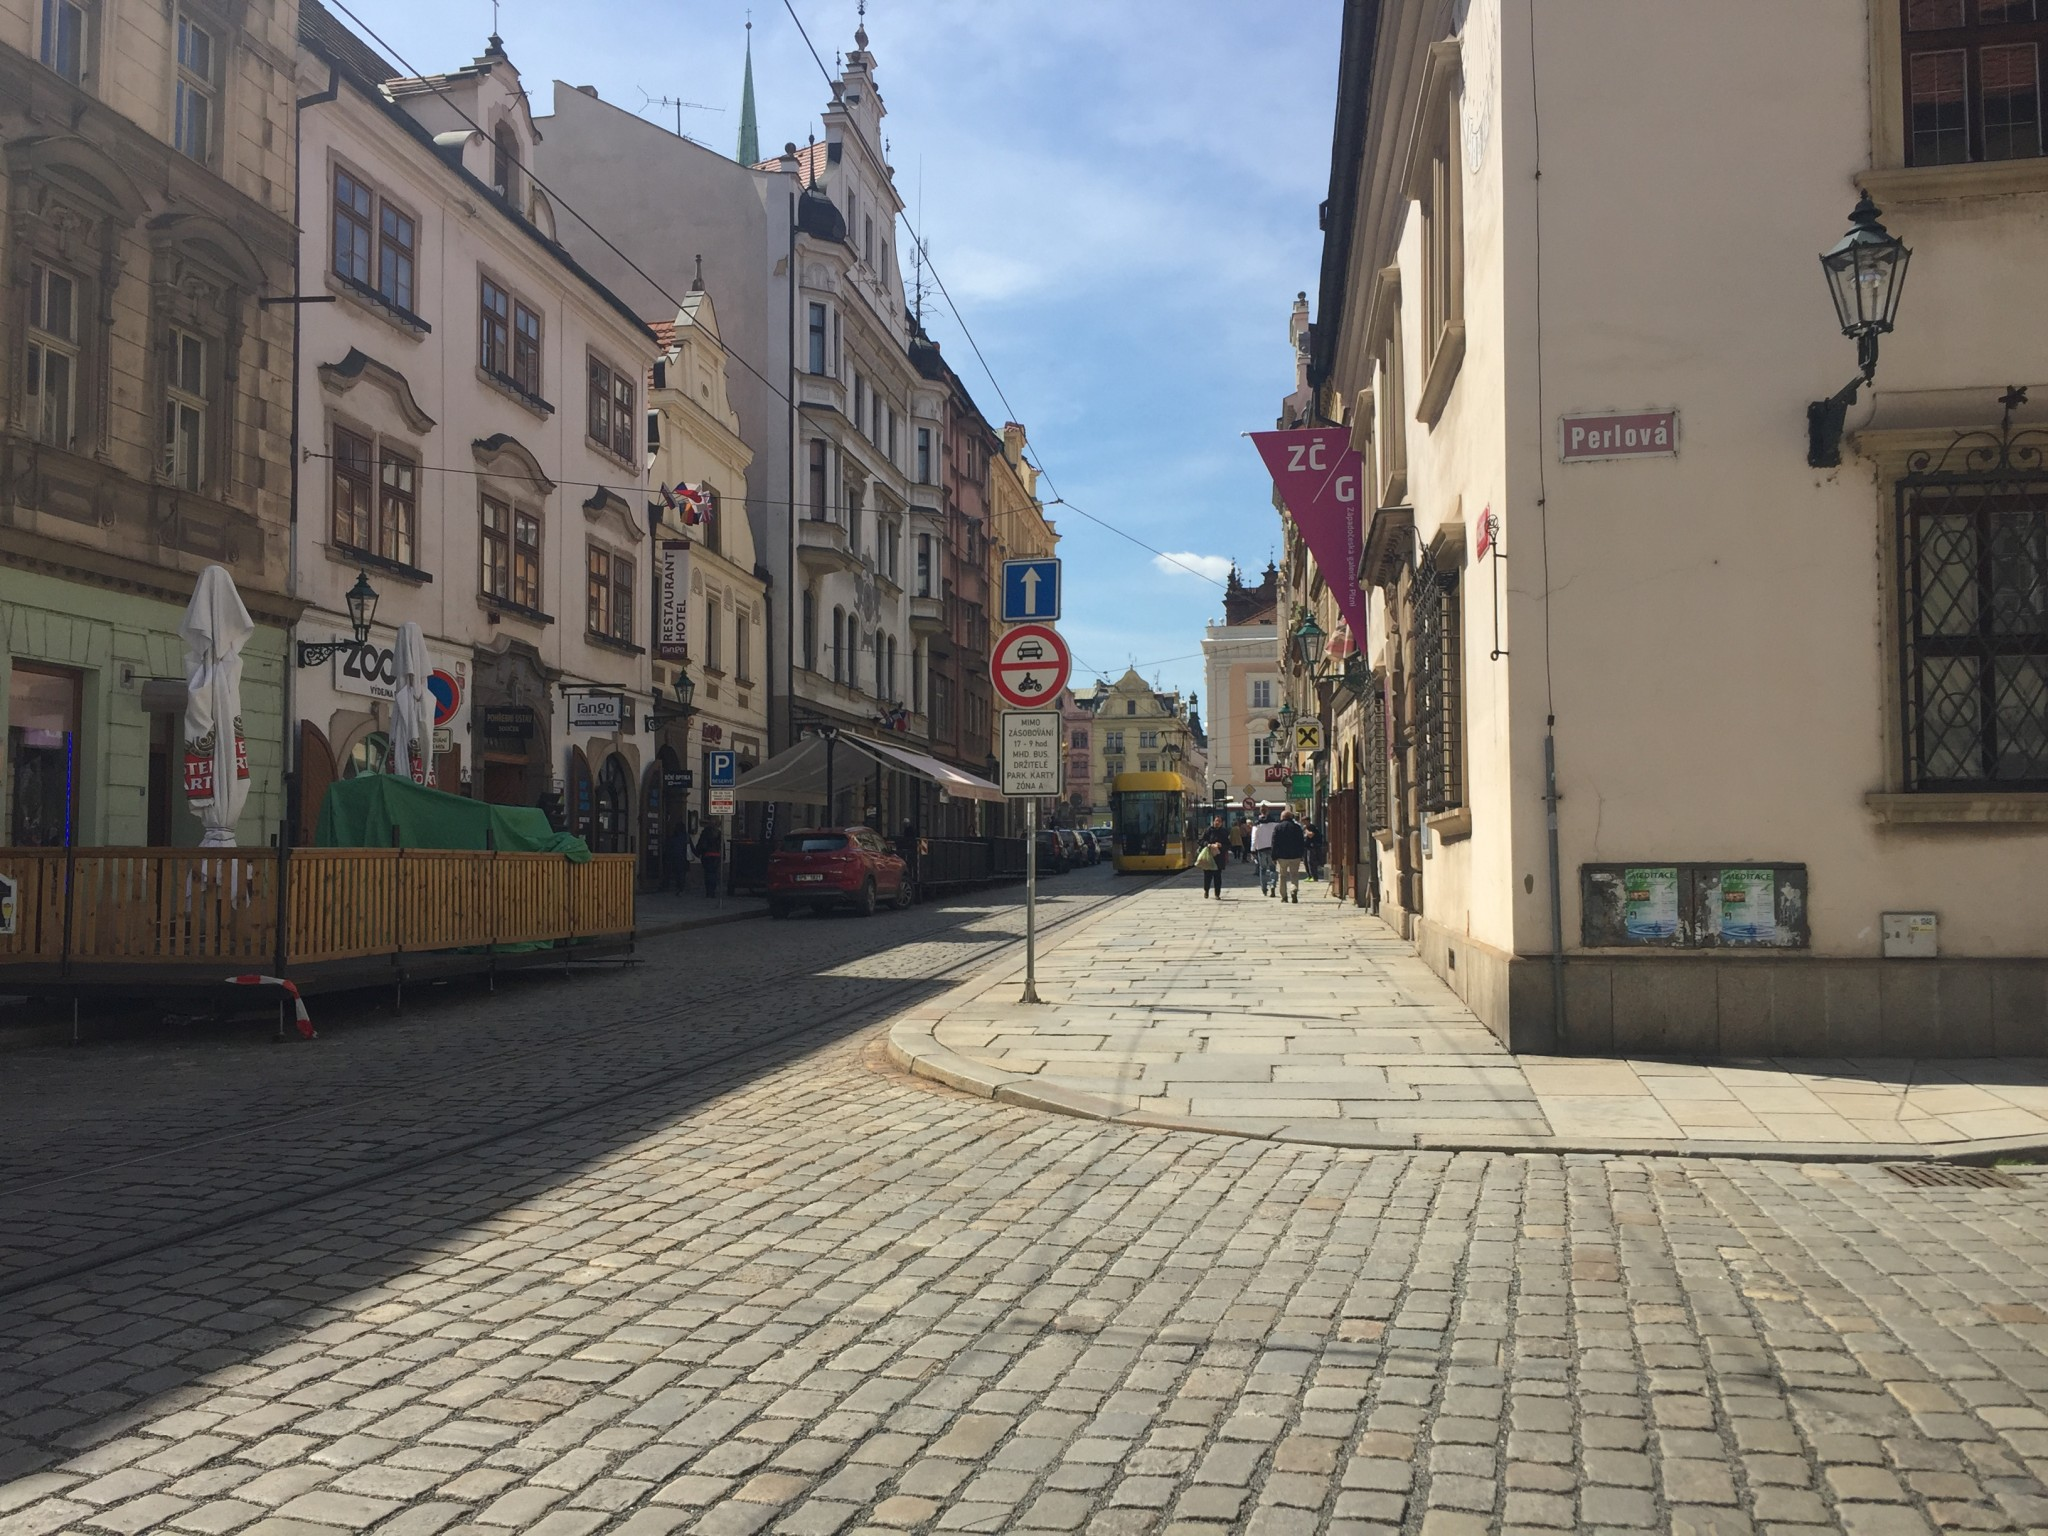 The best day trip from Prague: 4 things to do in Pilsen, Czech Republic